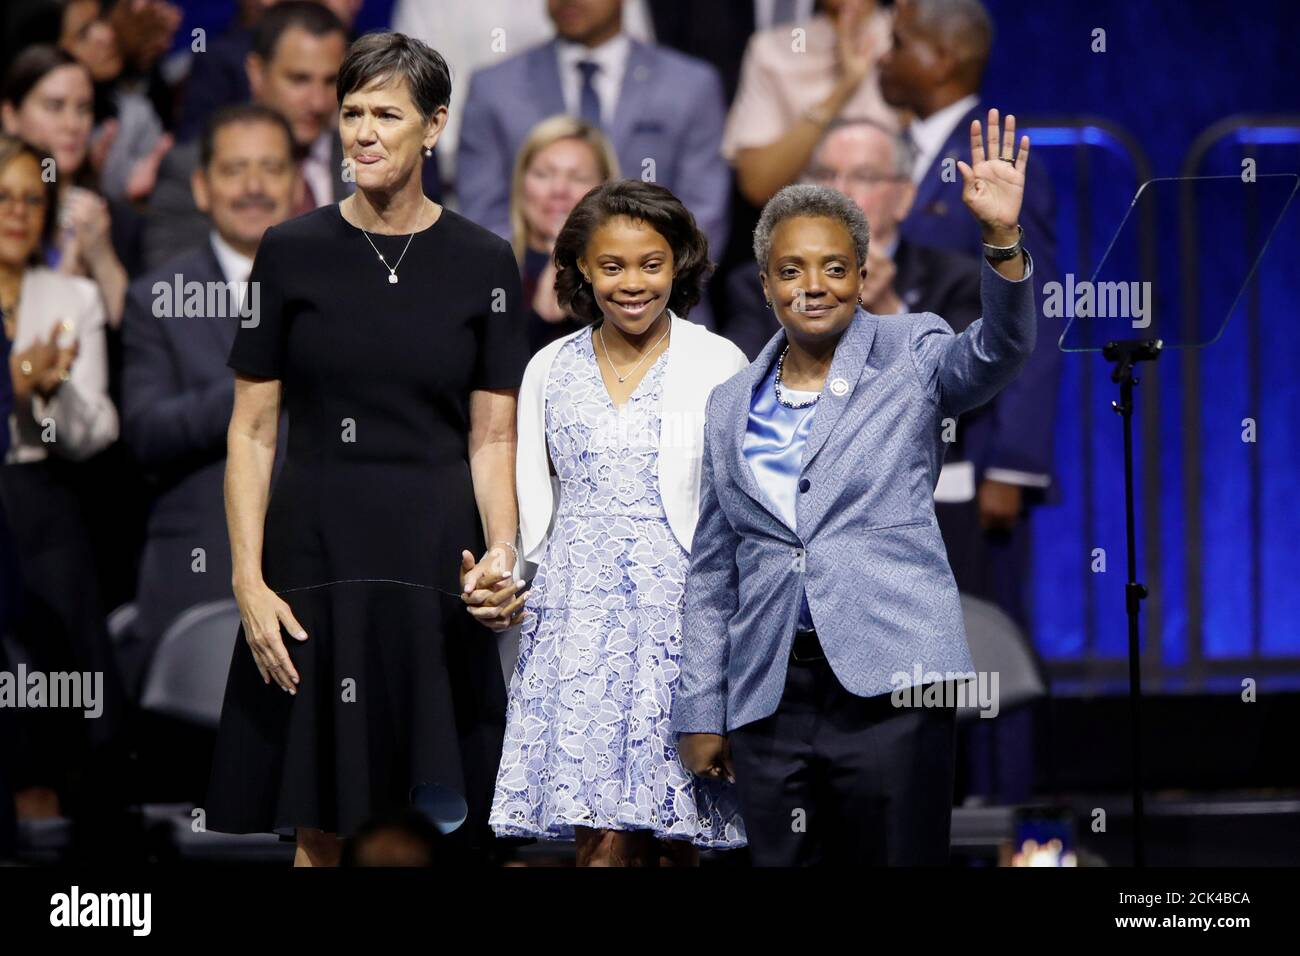 Lori Lightfoot R Waves To The The Crowd Next To Wife Amy Eshleman L And Daughter From left, lori lightfoot, daughter vivian and wife amy eshleman, celebrating lightfoot's mayoral win in chicago on april 2. https www alamy com lori lightfoot r waves to the the crowd next to wife amy eshleman l and daughter vivian c after speaking after being sworn in as chicagos 56th mayor during an inauguration ceremony at wintrust arena in chicago illinois us may 20 2019 reuterskamil krzaczynski image373192970 html